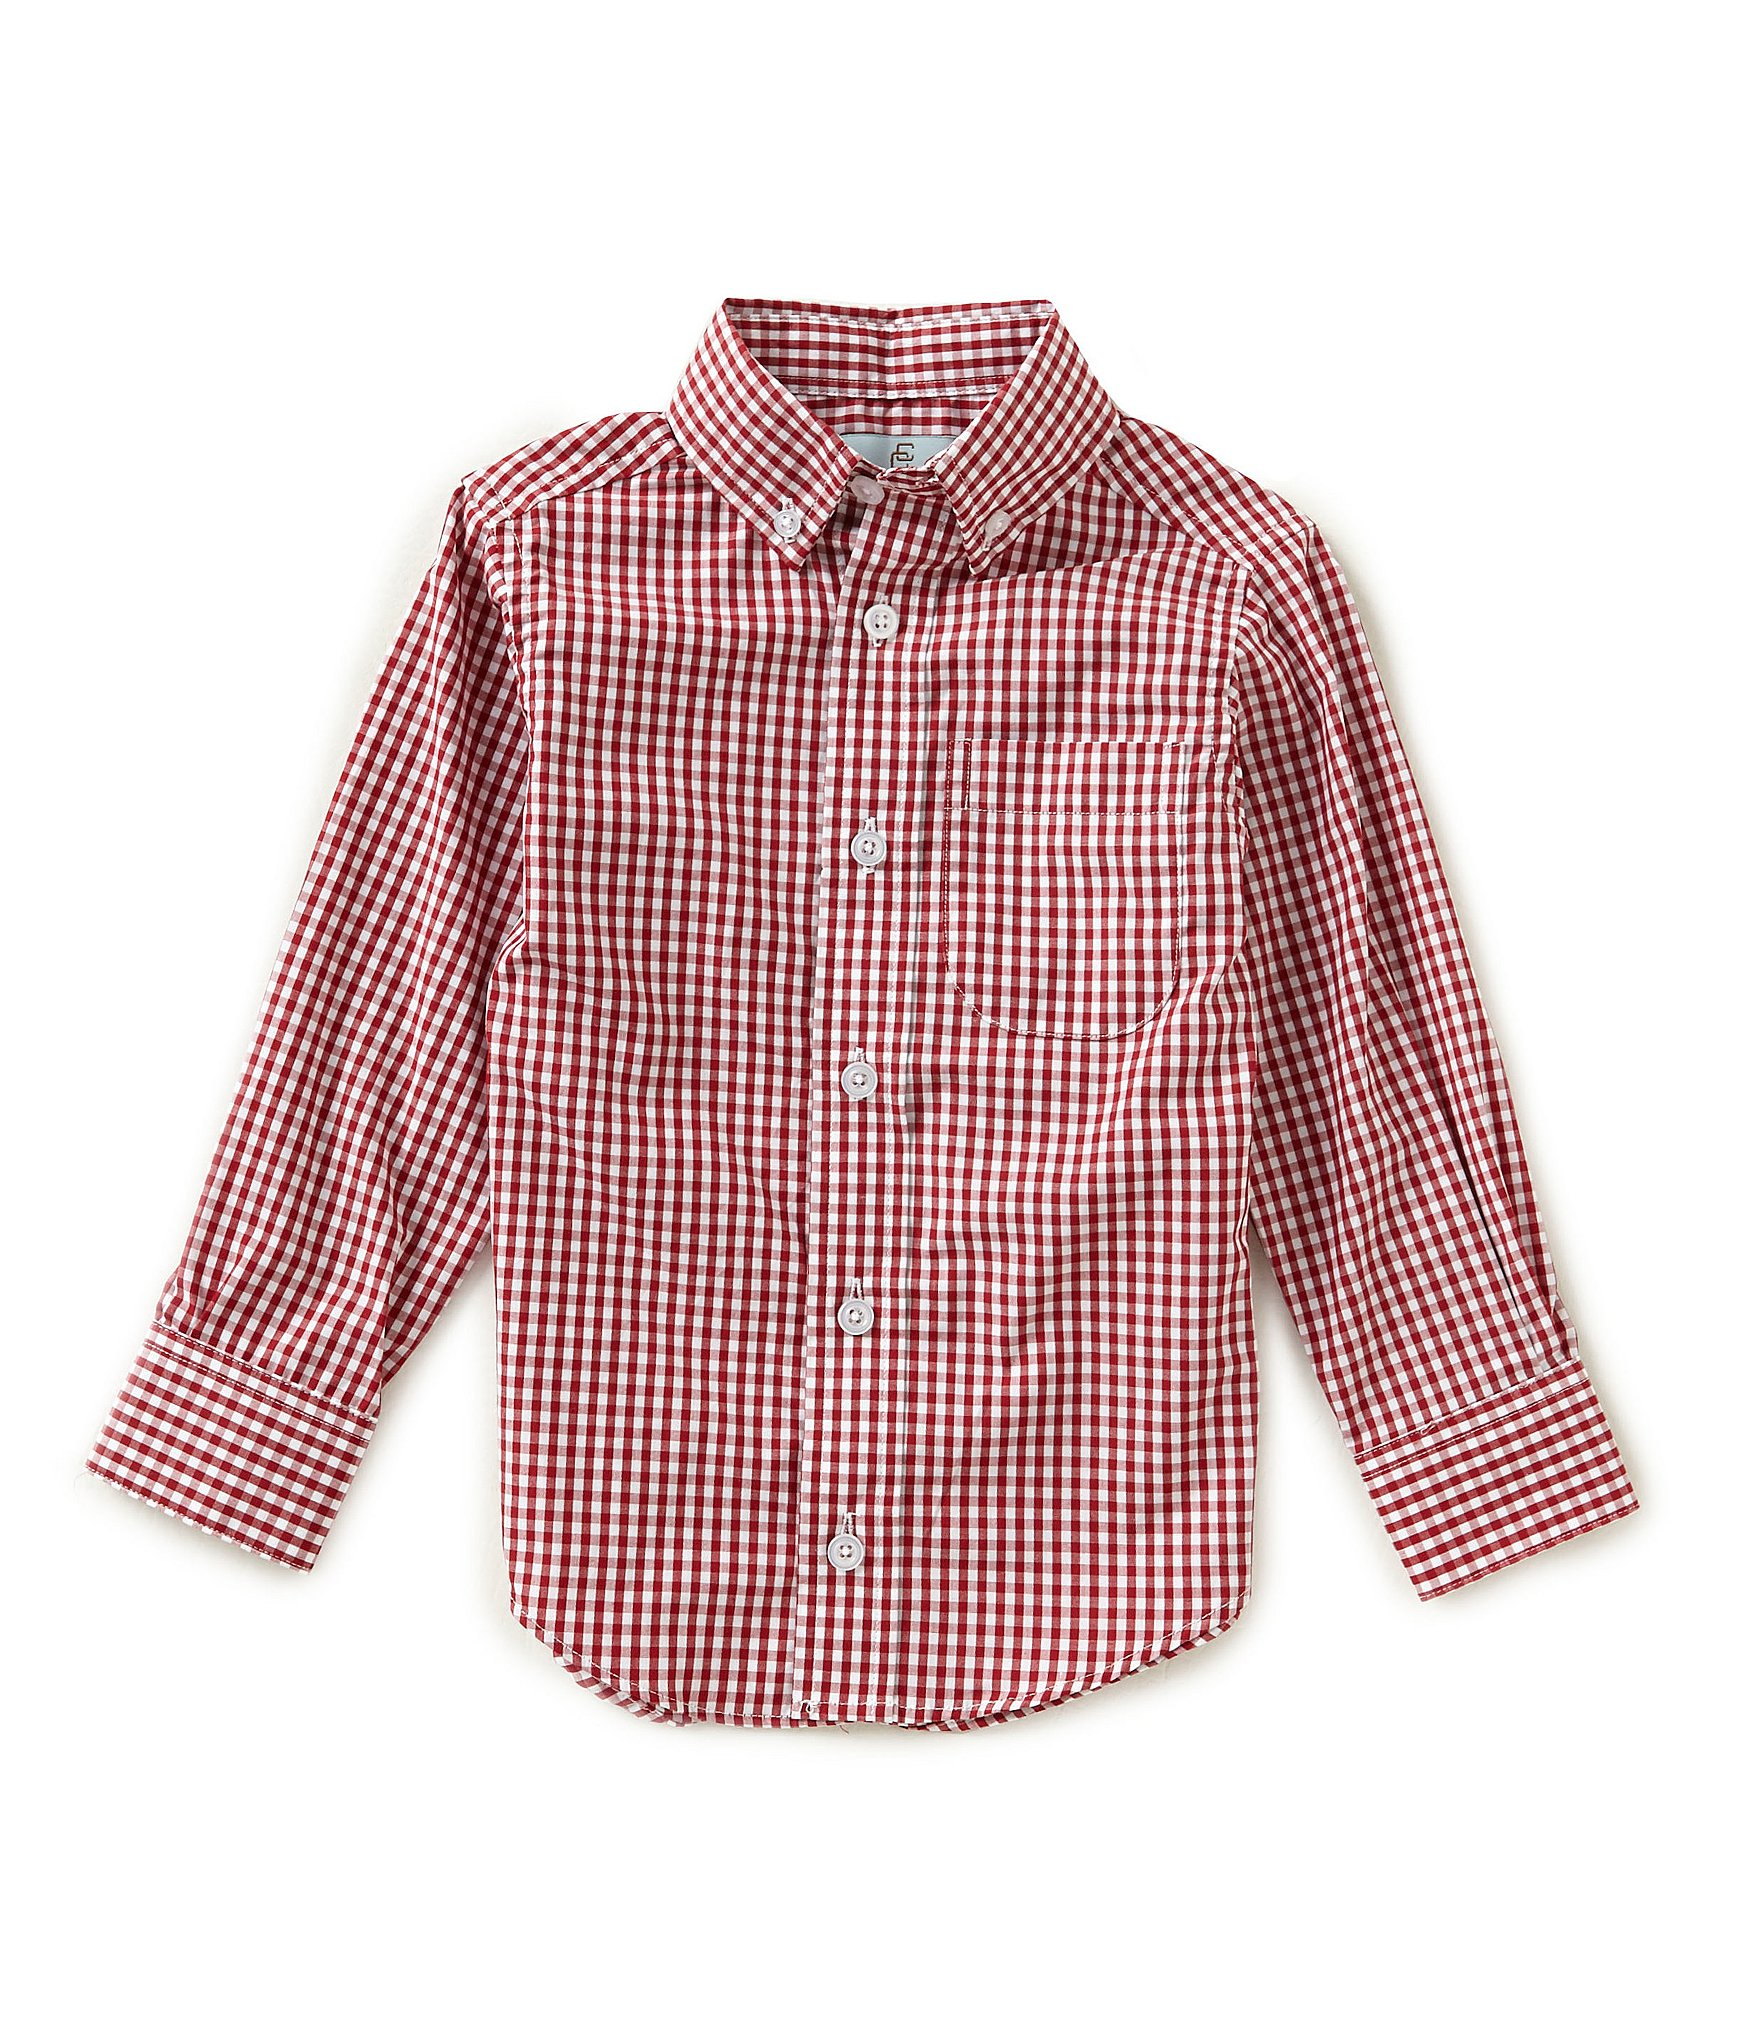 Class club little boys 2t 7 long sleeve gingham shirt for Red and white gingham shirt women s